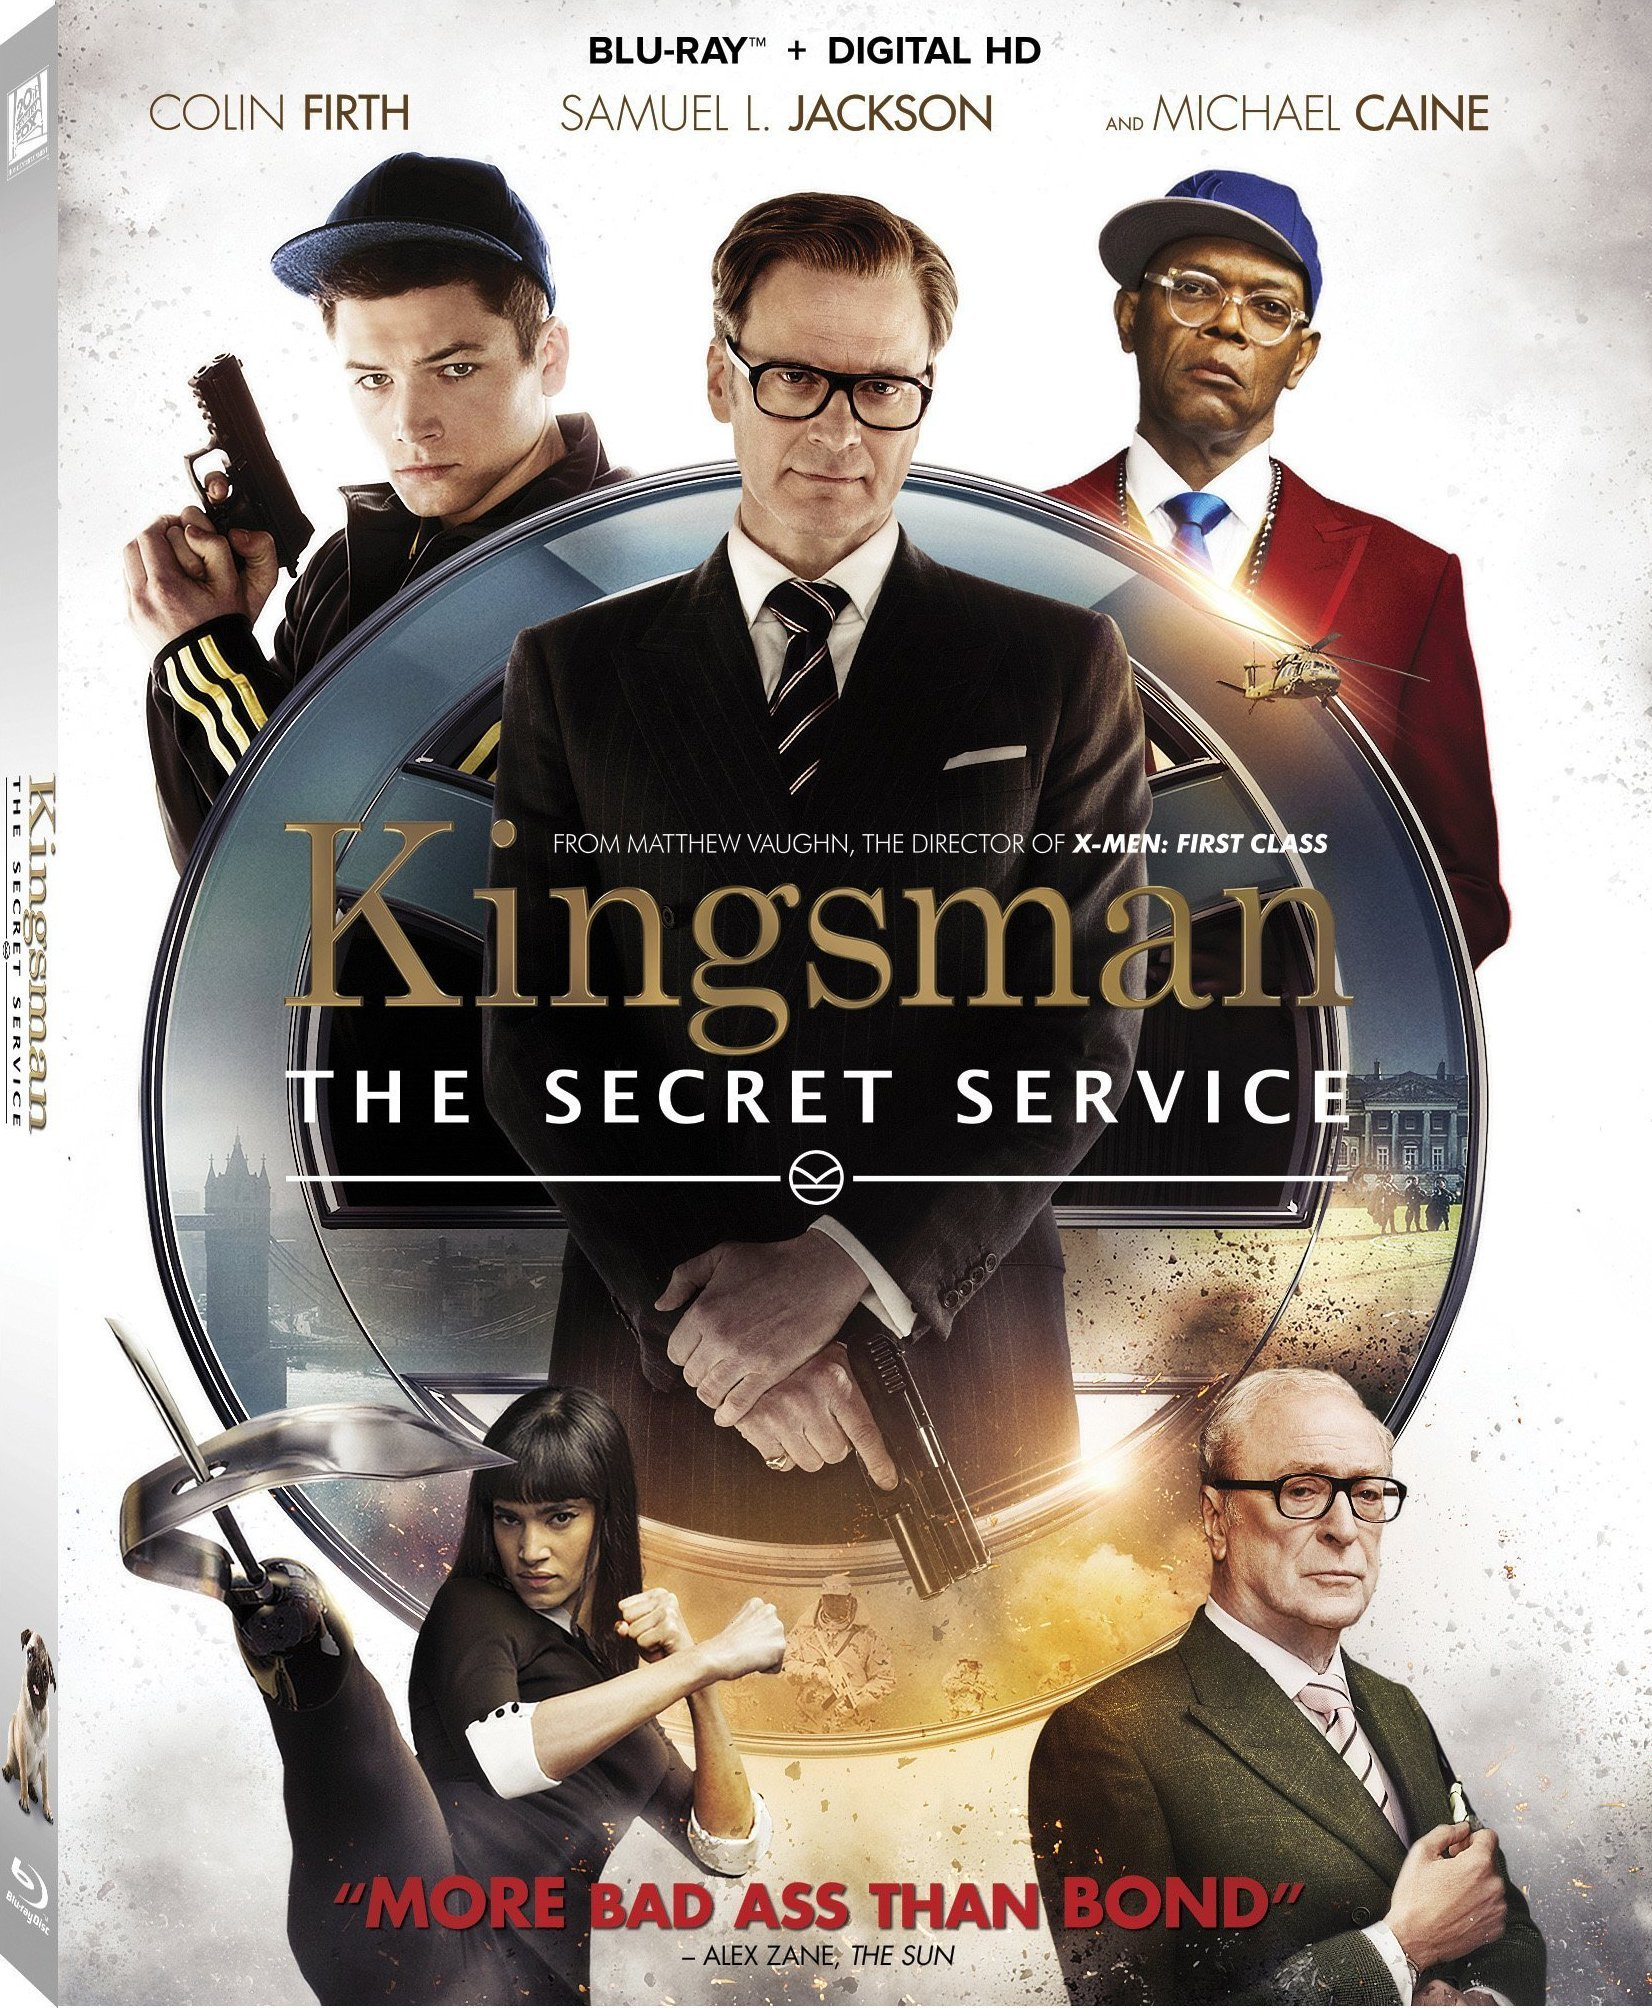 Kingsman: The Secret Service Blu-Ray Review